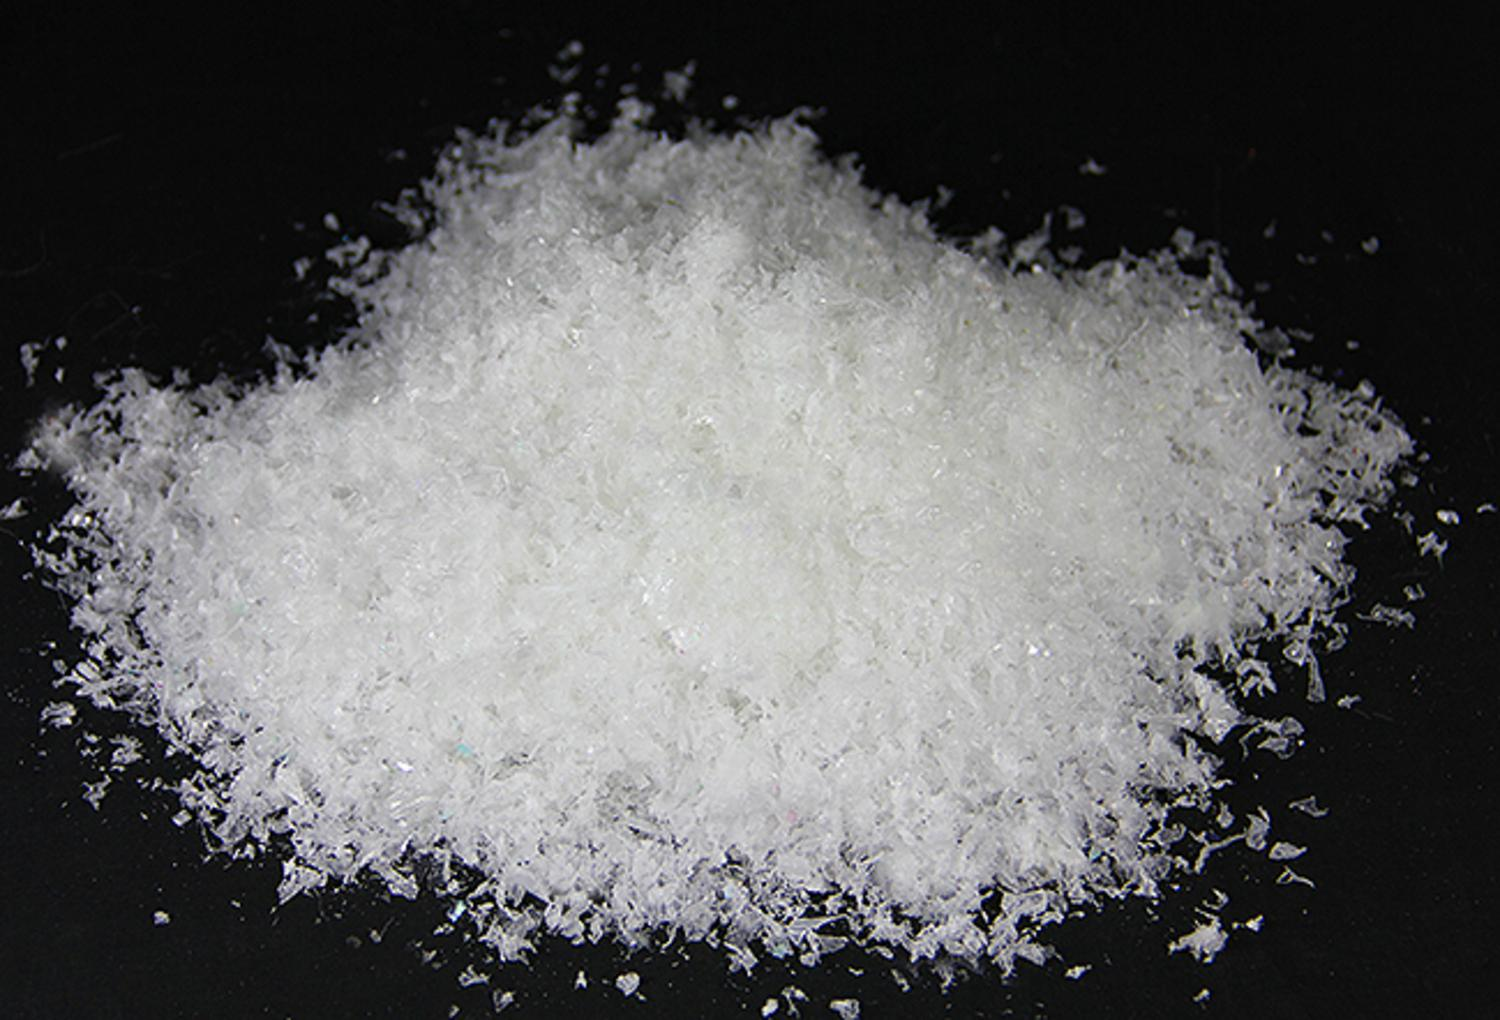 1.5 oz. White Iridescent Artificial Powder Snow Twinkle Flakes for Christmas Decorating